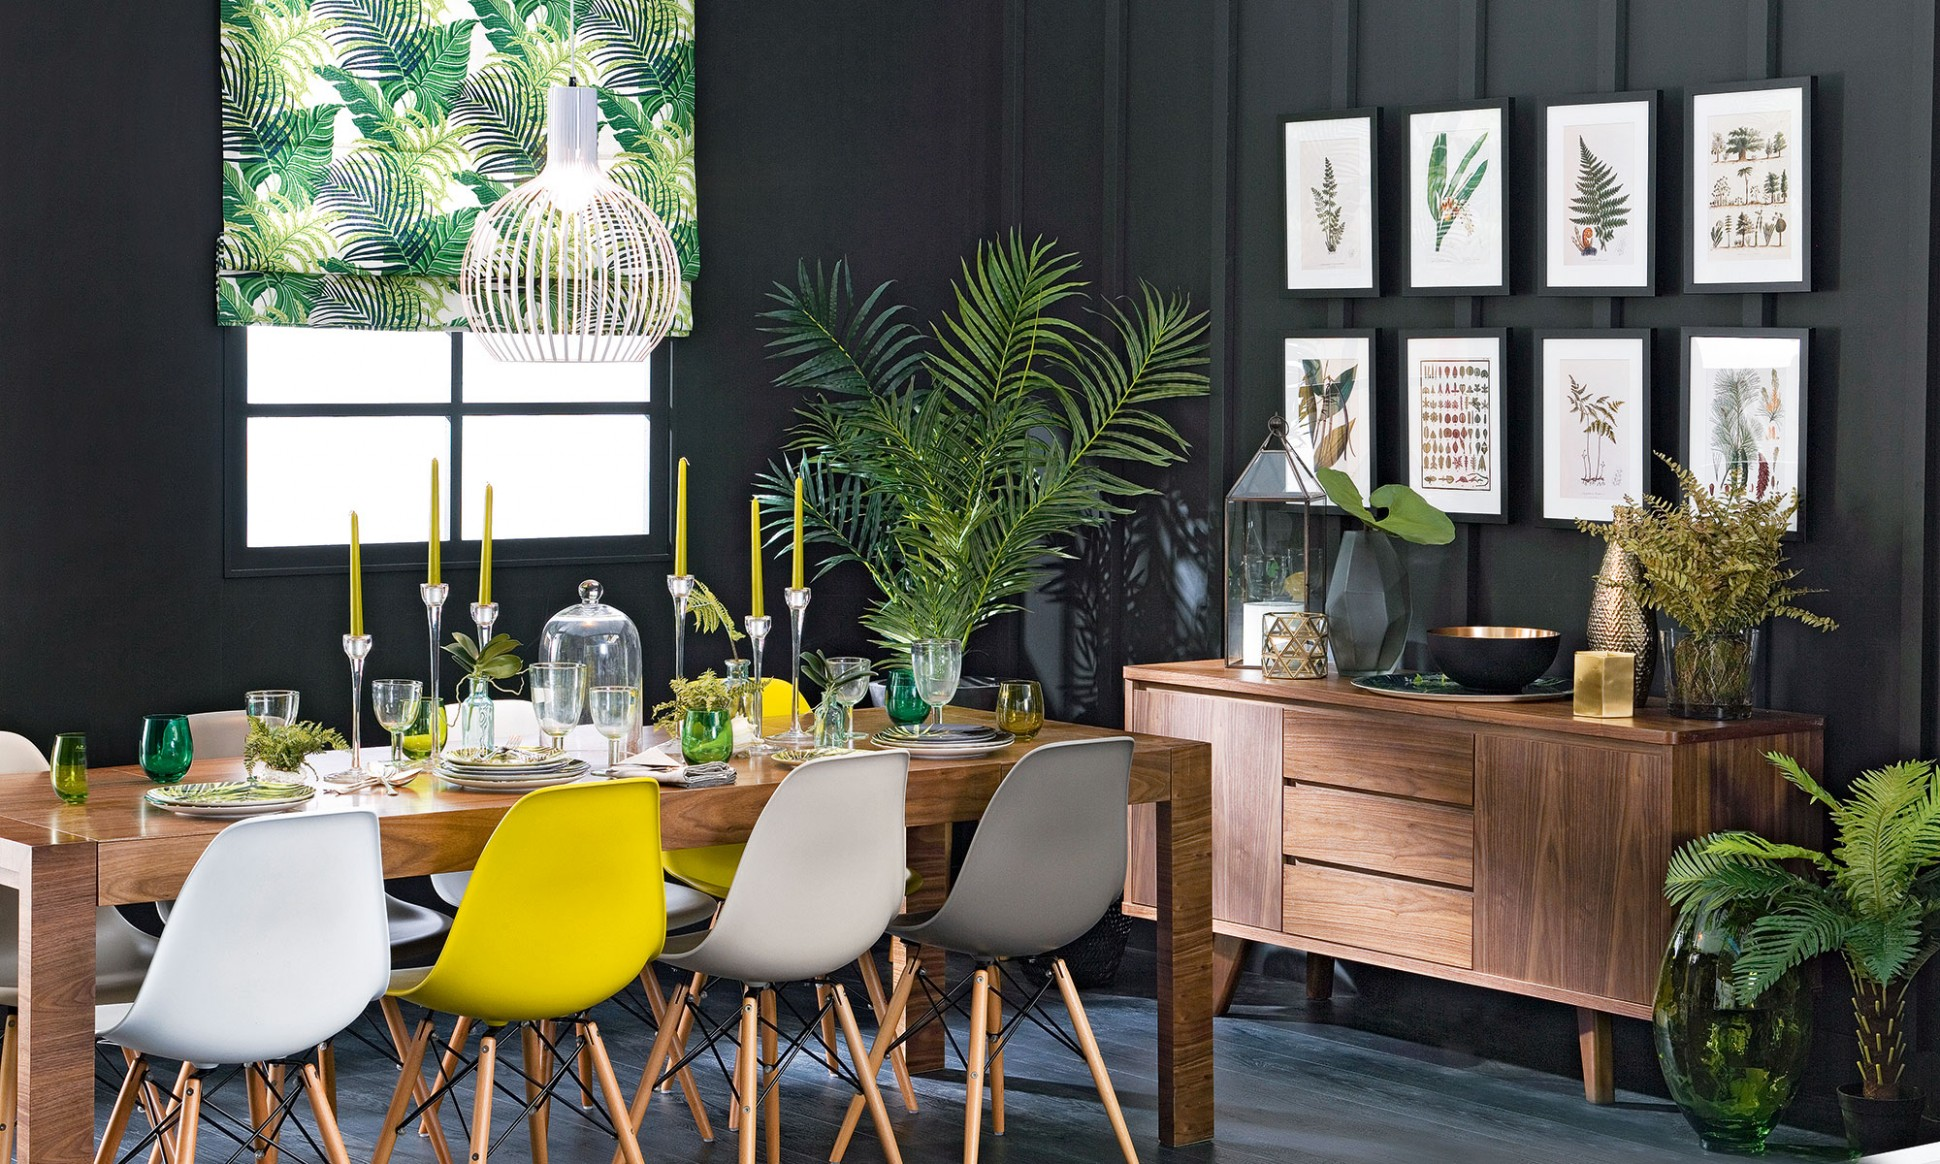 Budget dining room ideas – serve up a fresh look on a shoestring - Very Dining Room Ideas